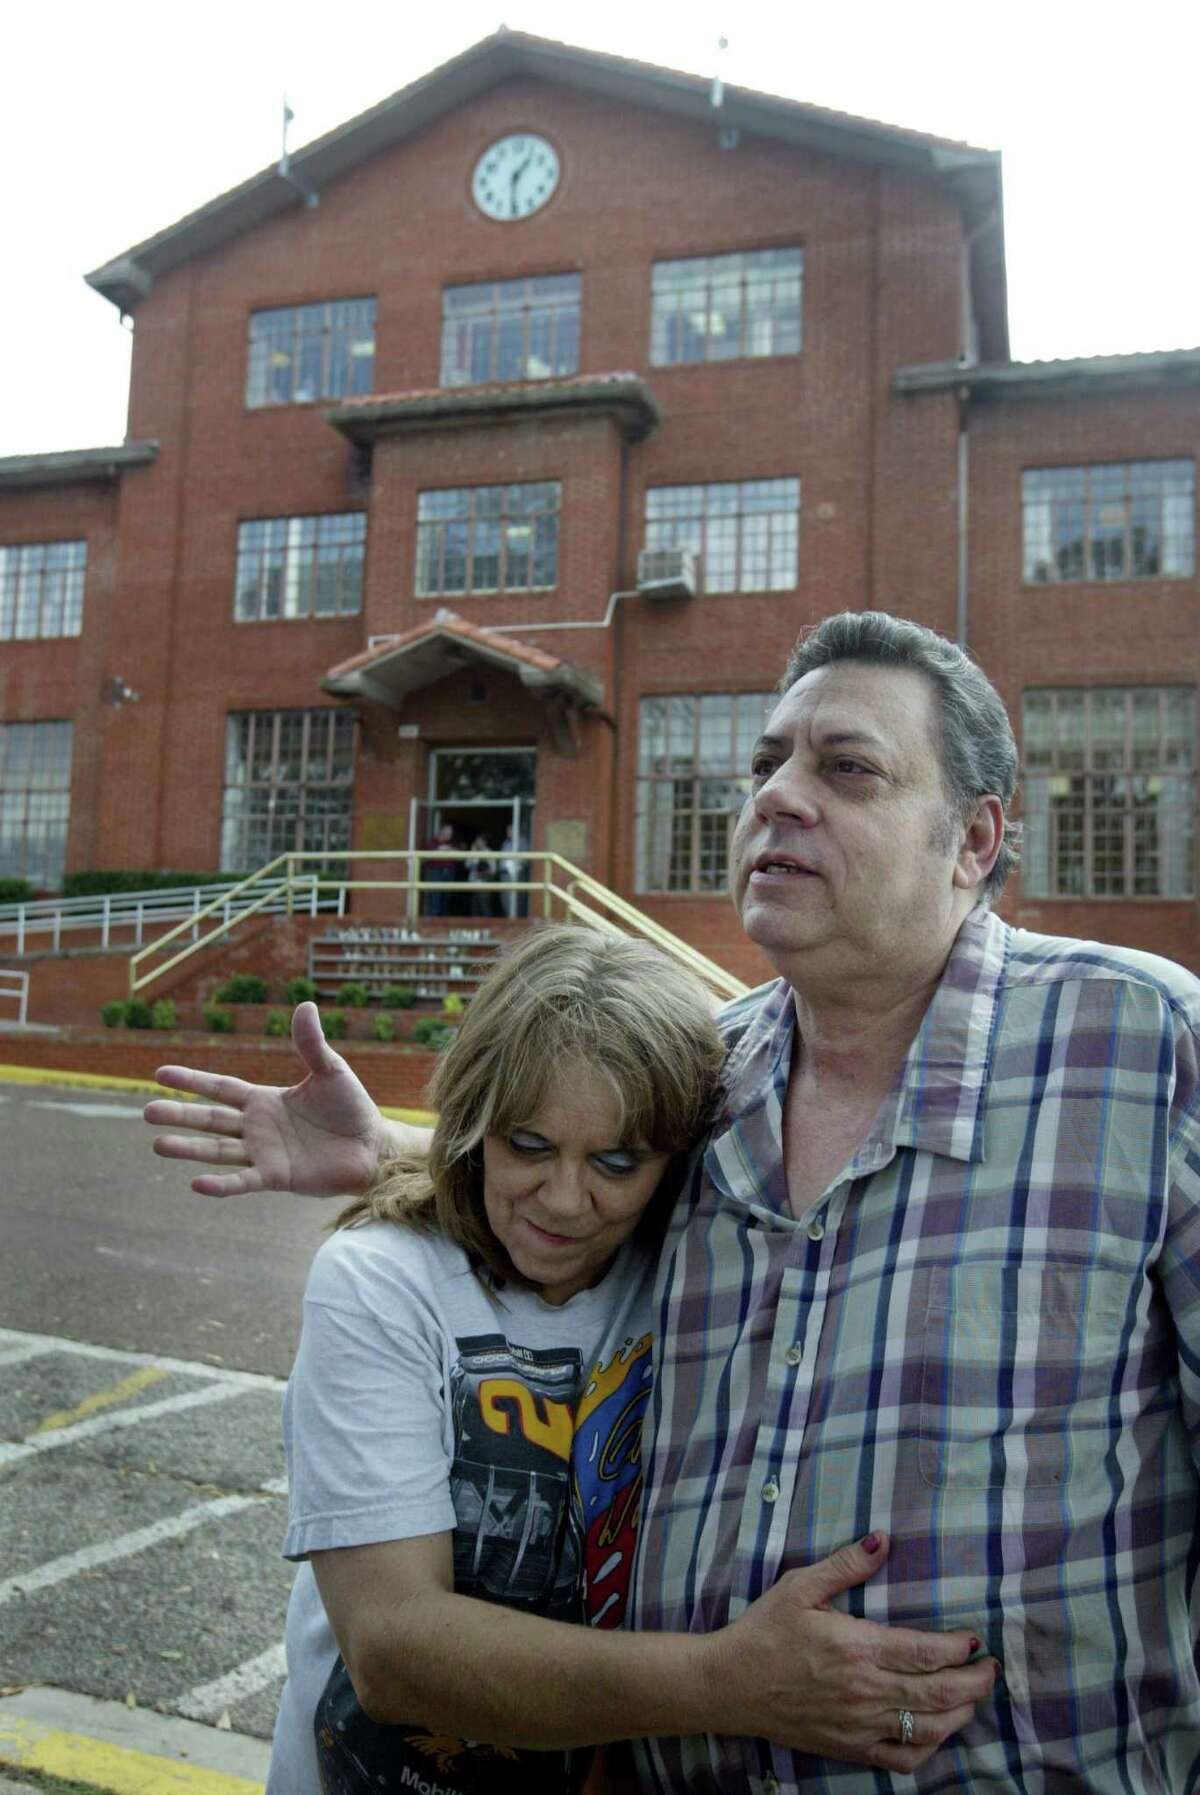 The number of death row exonerations in Texas points to the need to get the trials right by expanding the number of lawyers qualified to be appointed by the courts to defend indigent defendants in particular in capital cases. Ernest Willis, right, a Texas death row inmate for the last 17 years, hugs his wife of four years, Verilyn Willis, outside the prison Huntsville, Texas, after he was released Wednesday, Oct. 6, 2004. He was imprisoned for a crime that may not even have occurred - a fire first thought to be arson that killed two women.